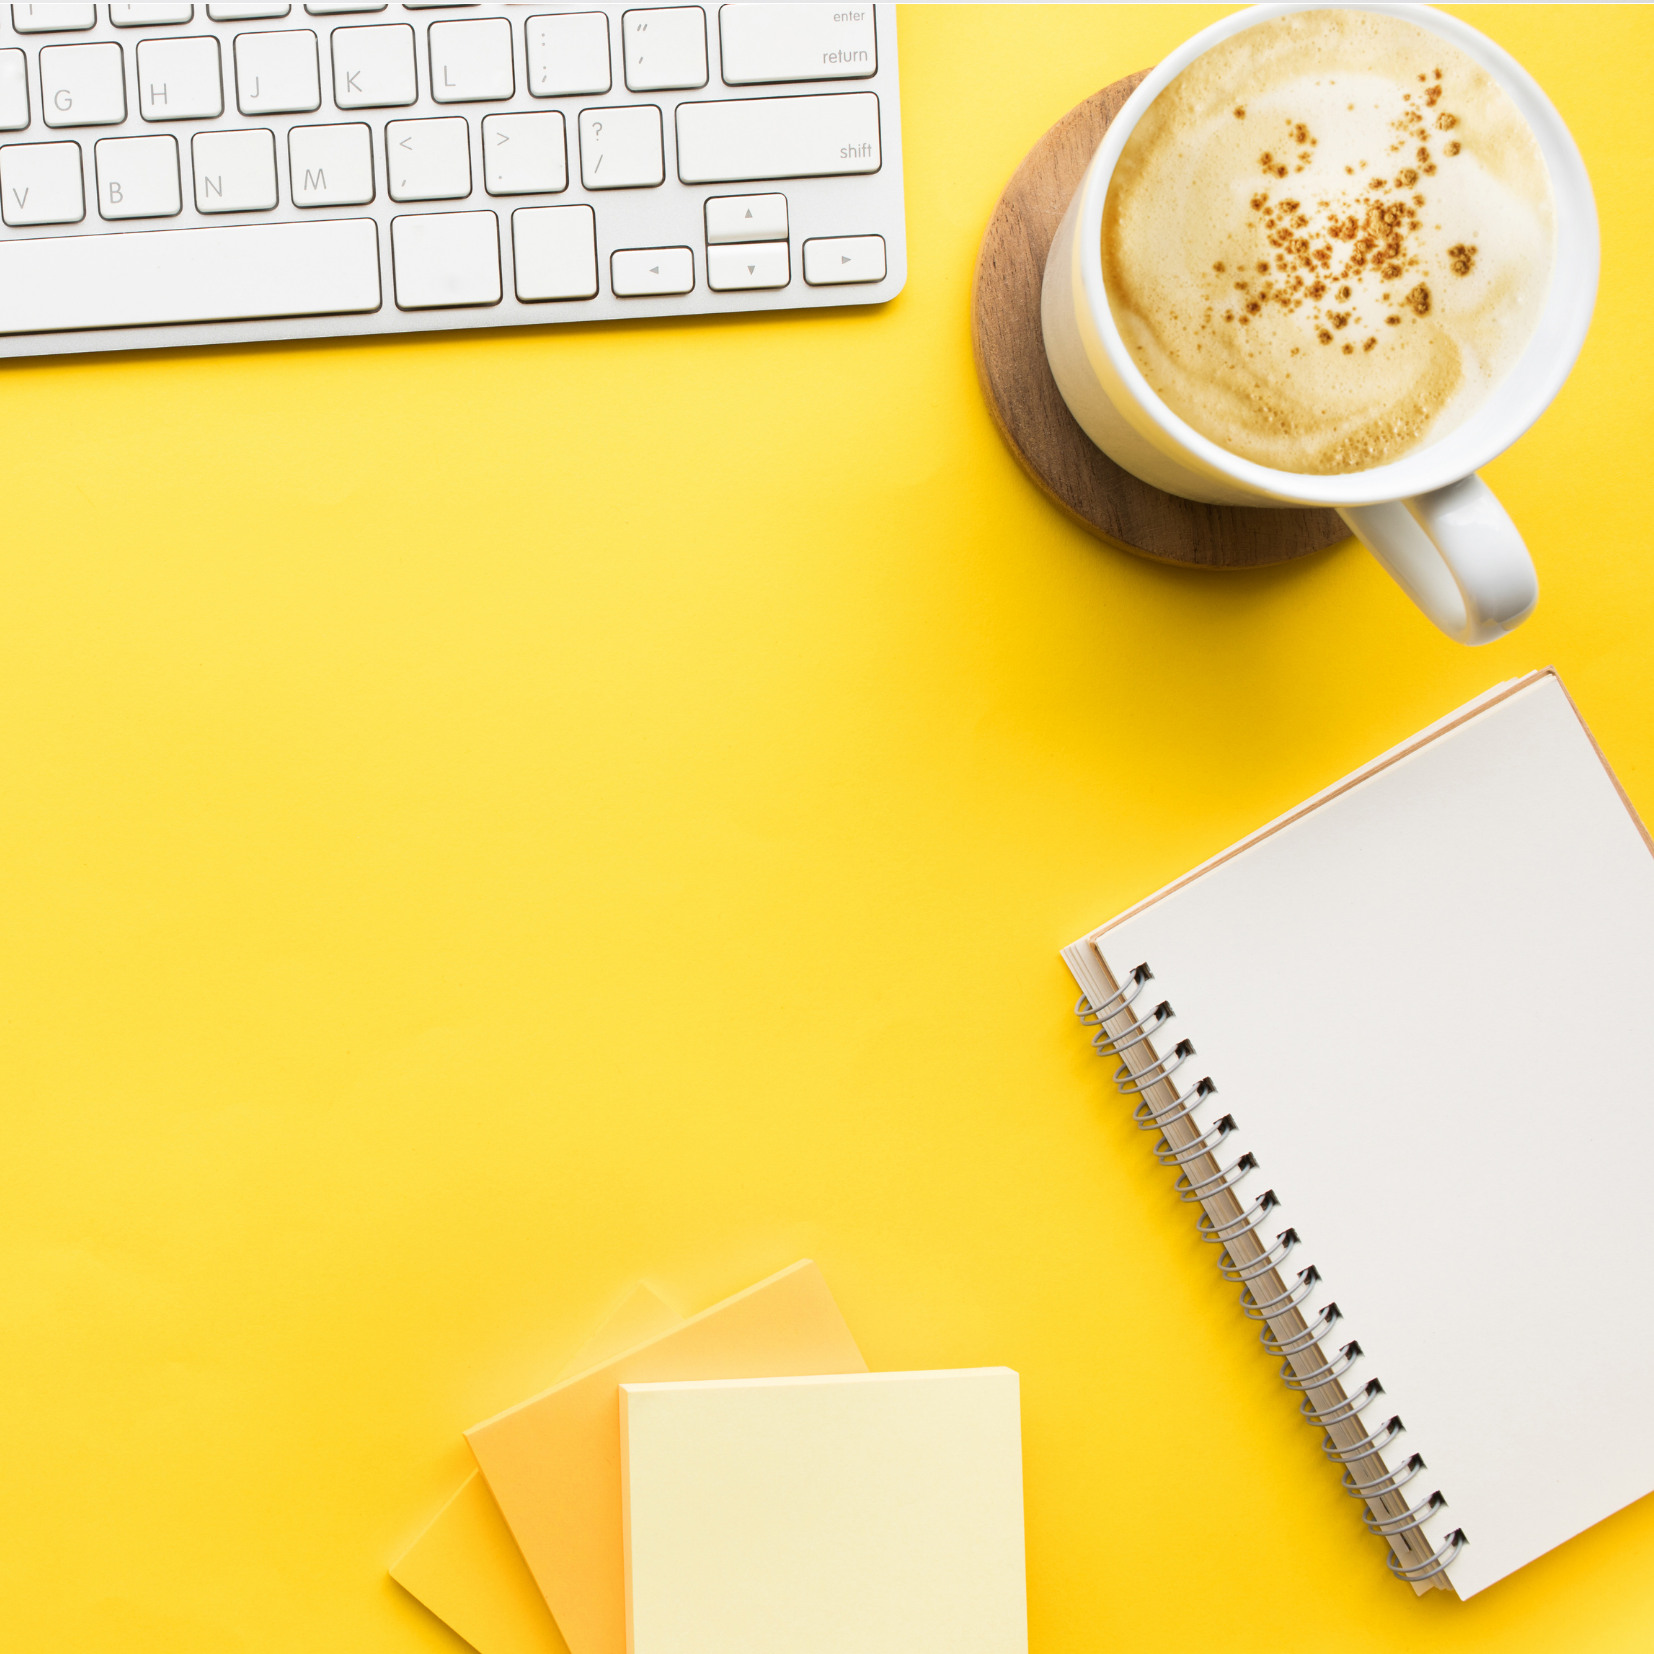 Coffee, Notebook & Keyboard on Yellow Background depicting Consulting for Van Dusen Nutrition